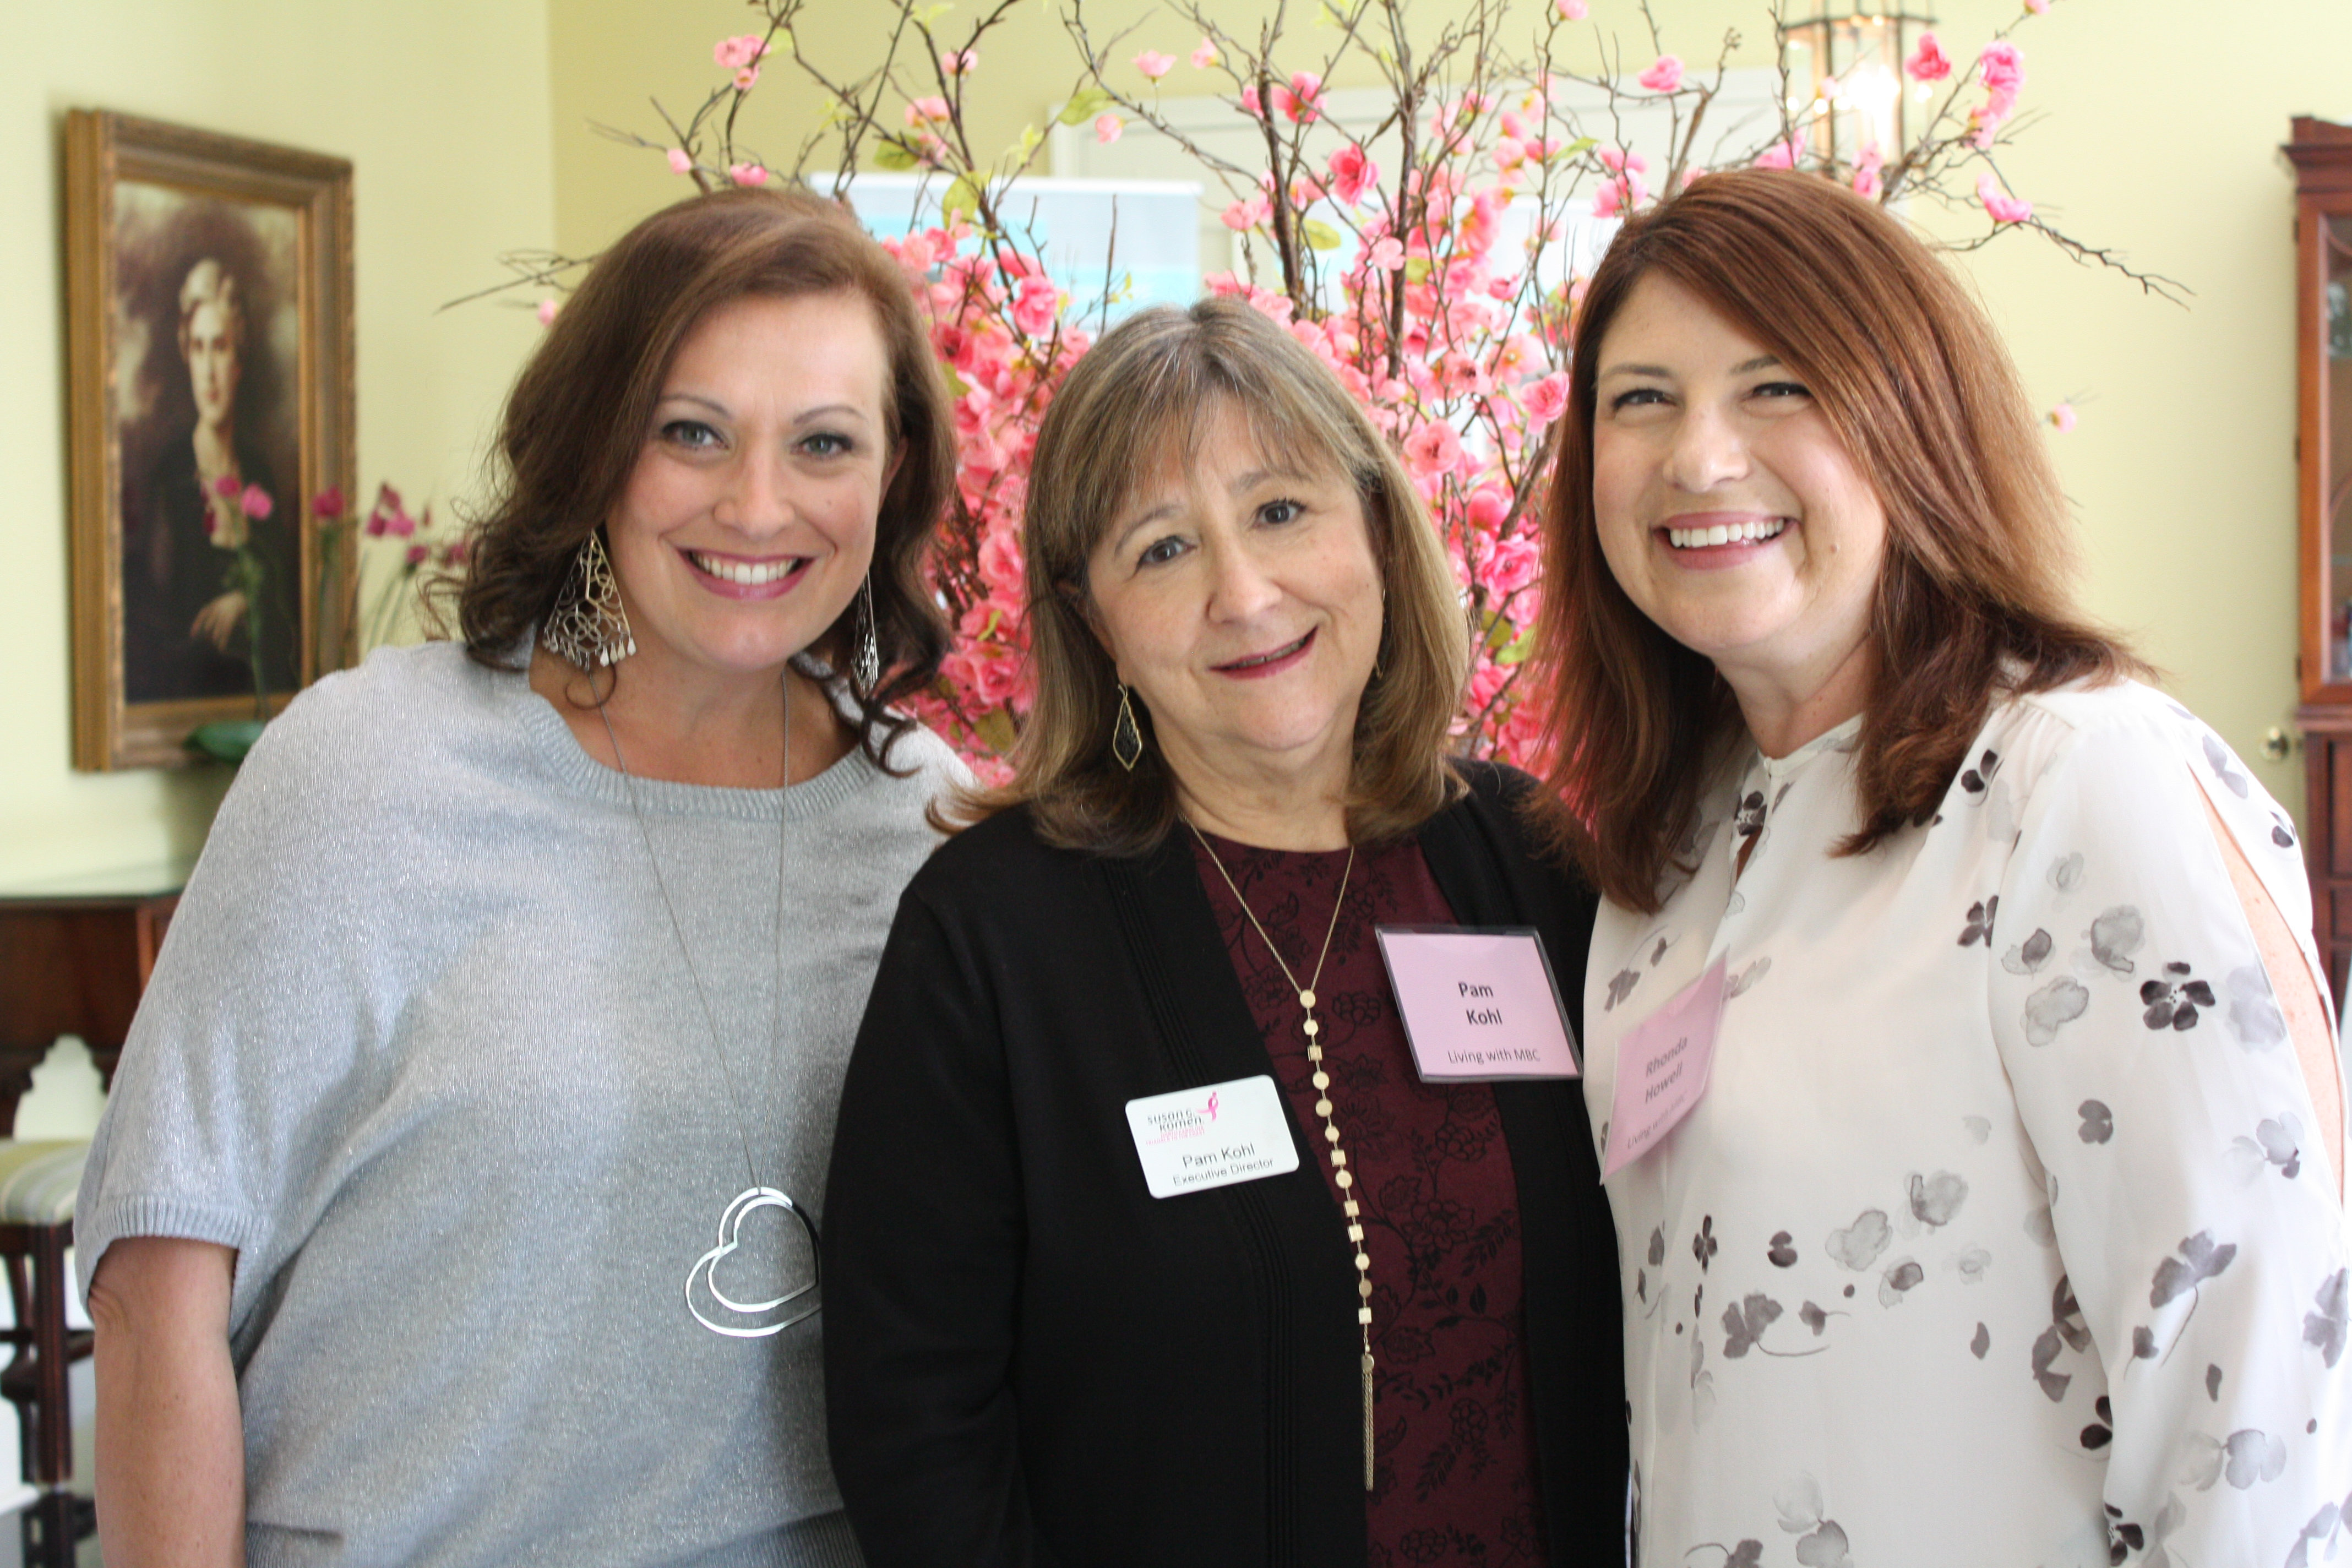 Metastatic Breast Cancer Survivors: Katrina Cooke, Pam Kohl, and Rhonda Howell, Oct. 2018